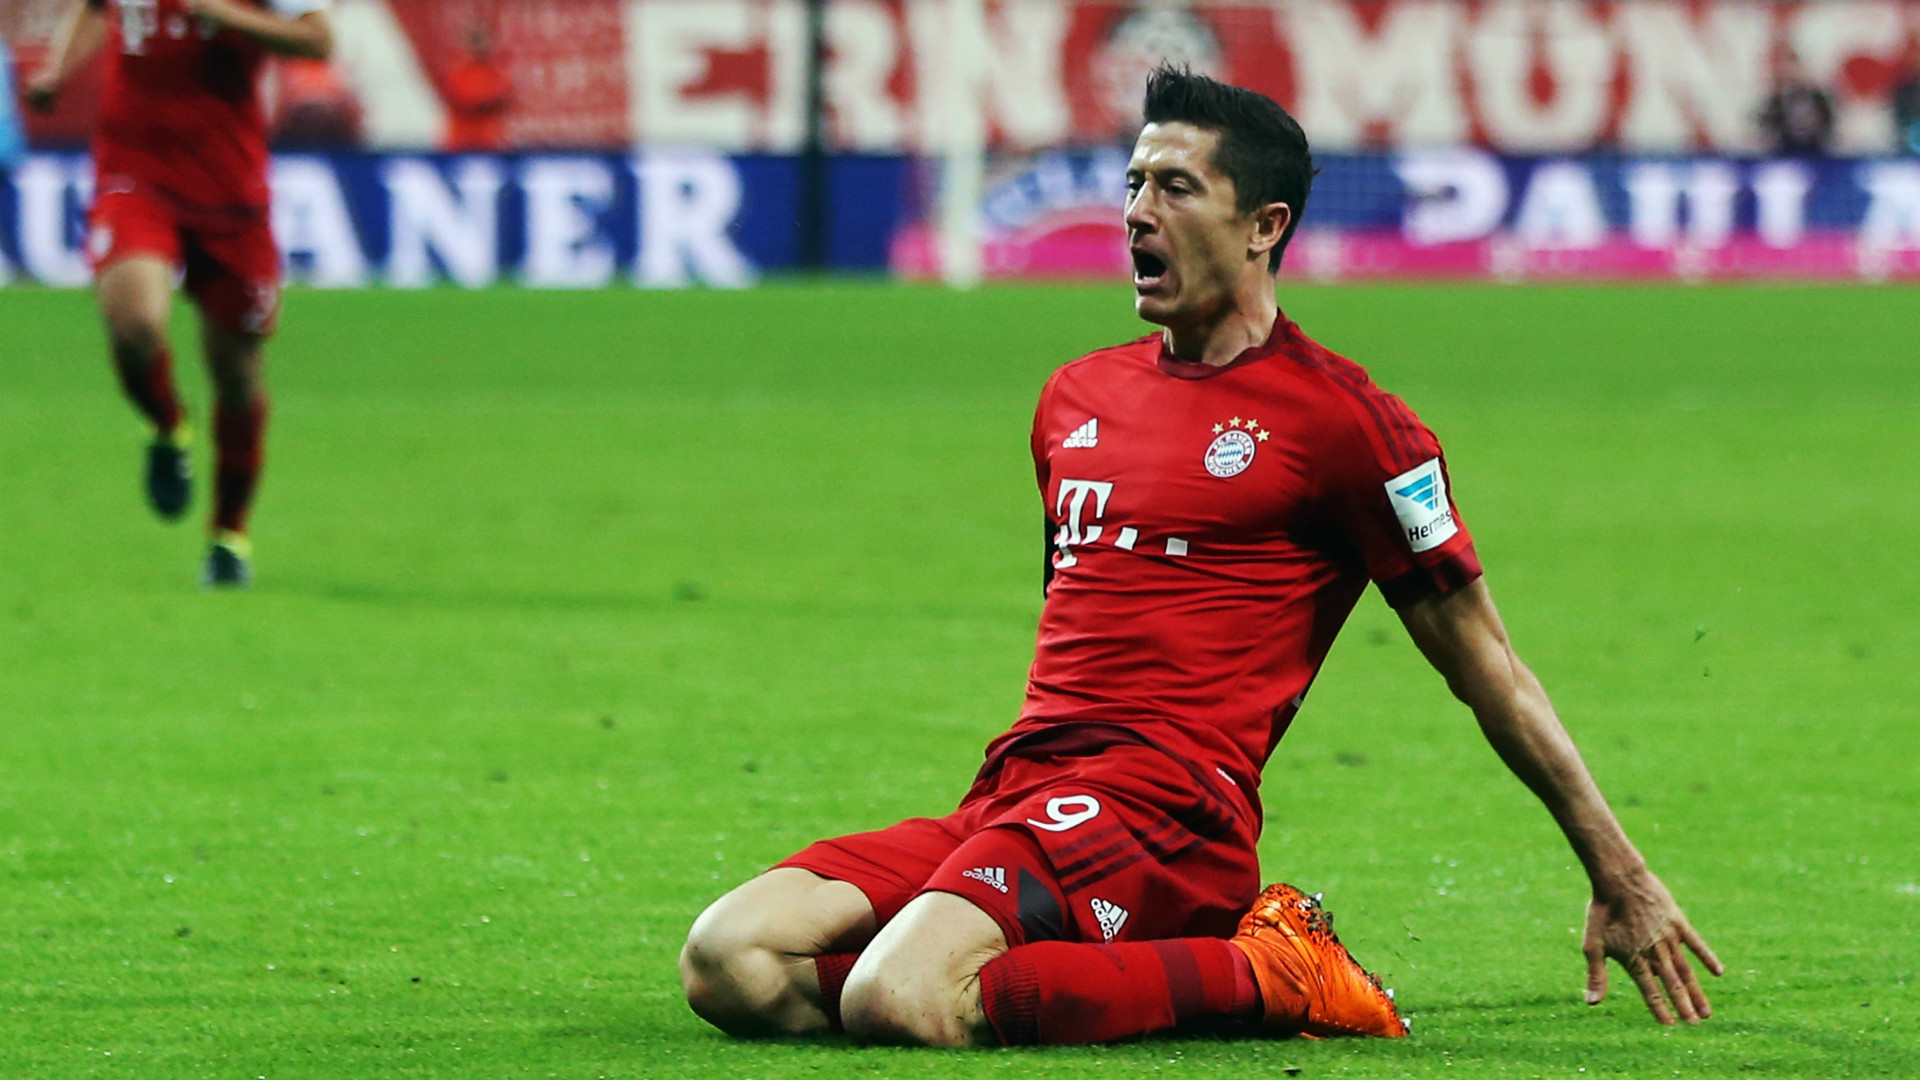 Bayern Munich boss Niko Kovac dismisses Robert Lewandowski rumours